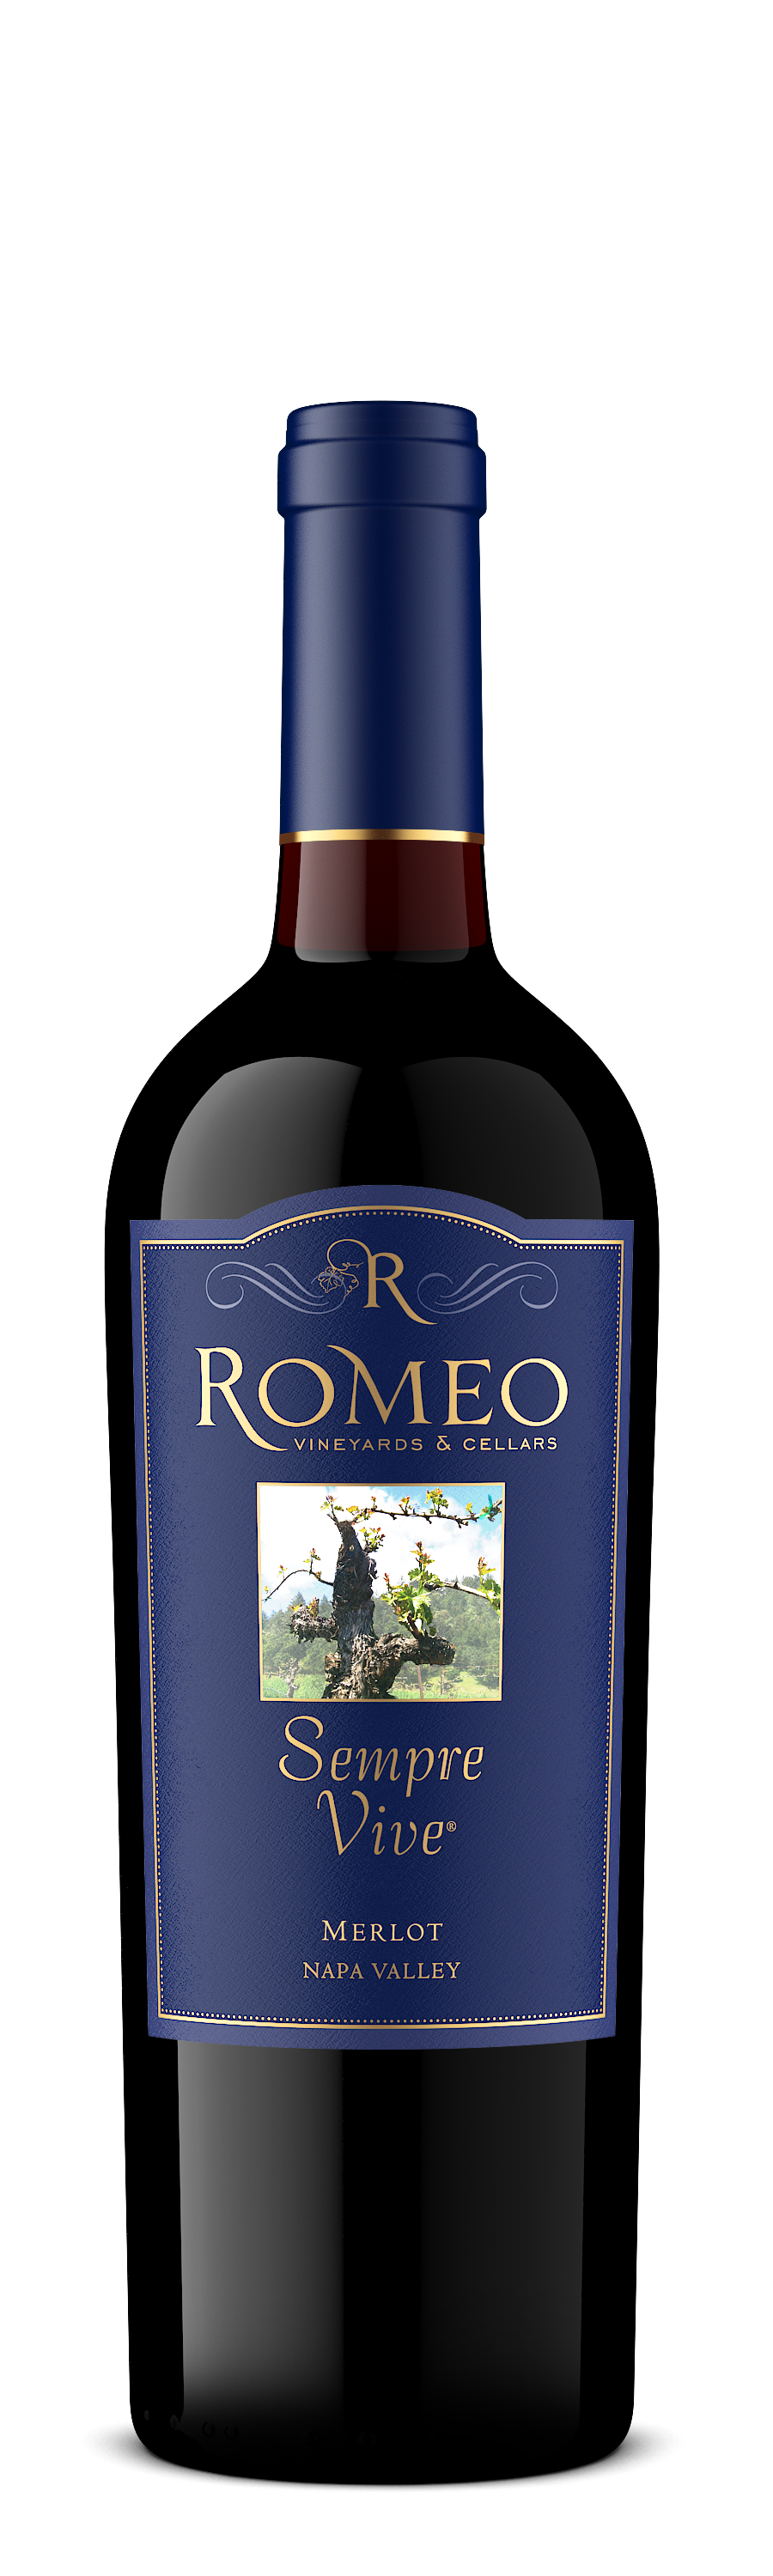 Product Image for 2014 Merlot